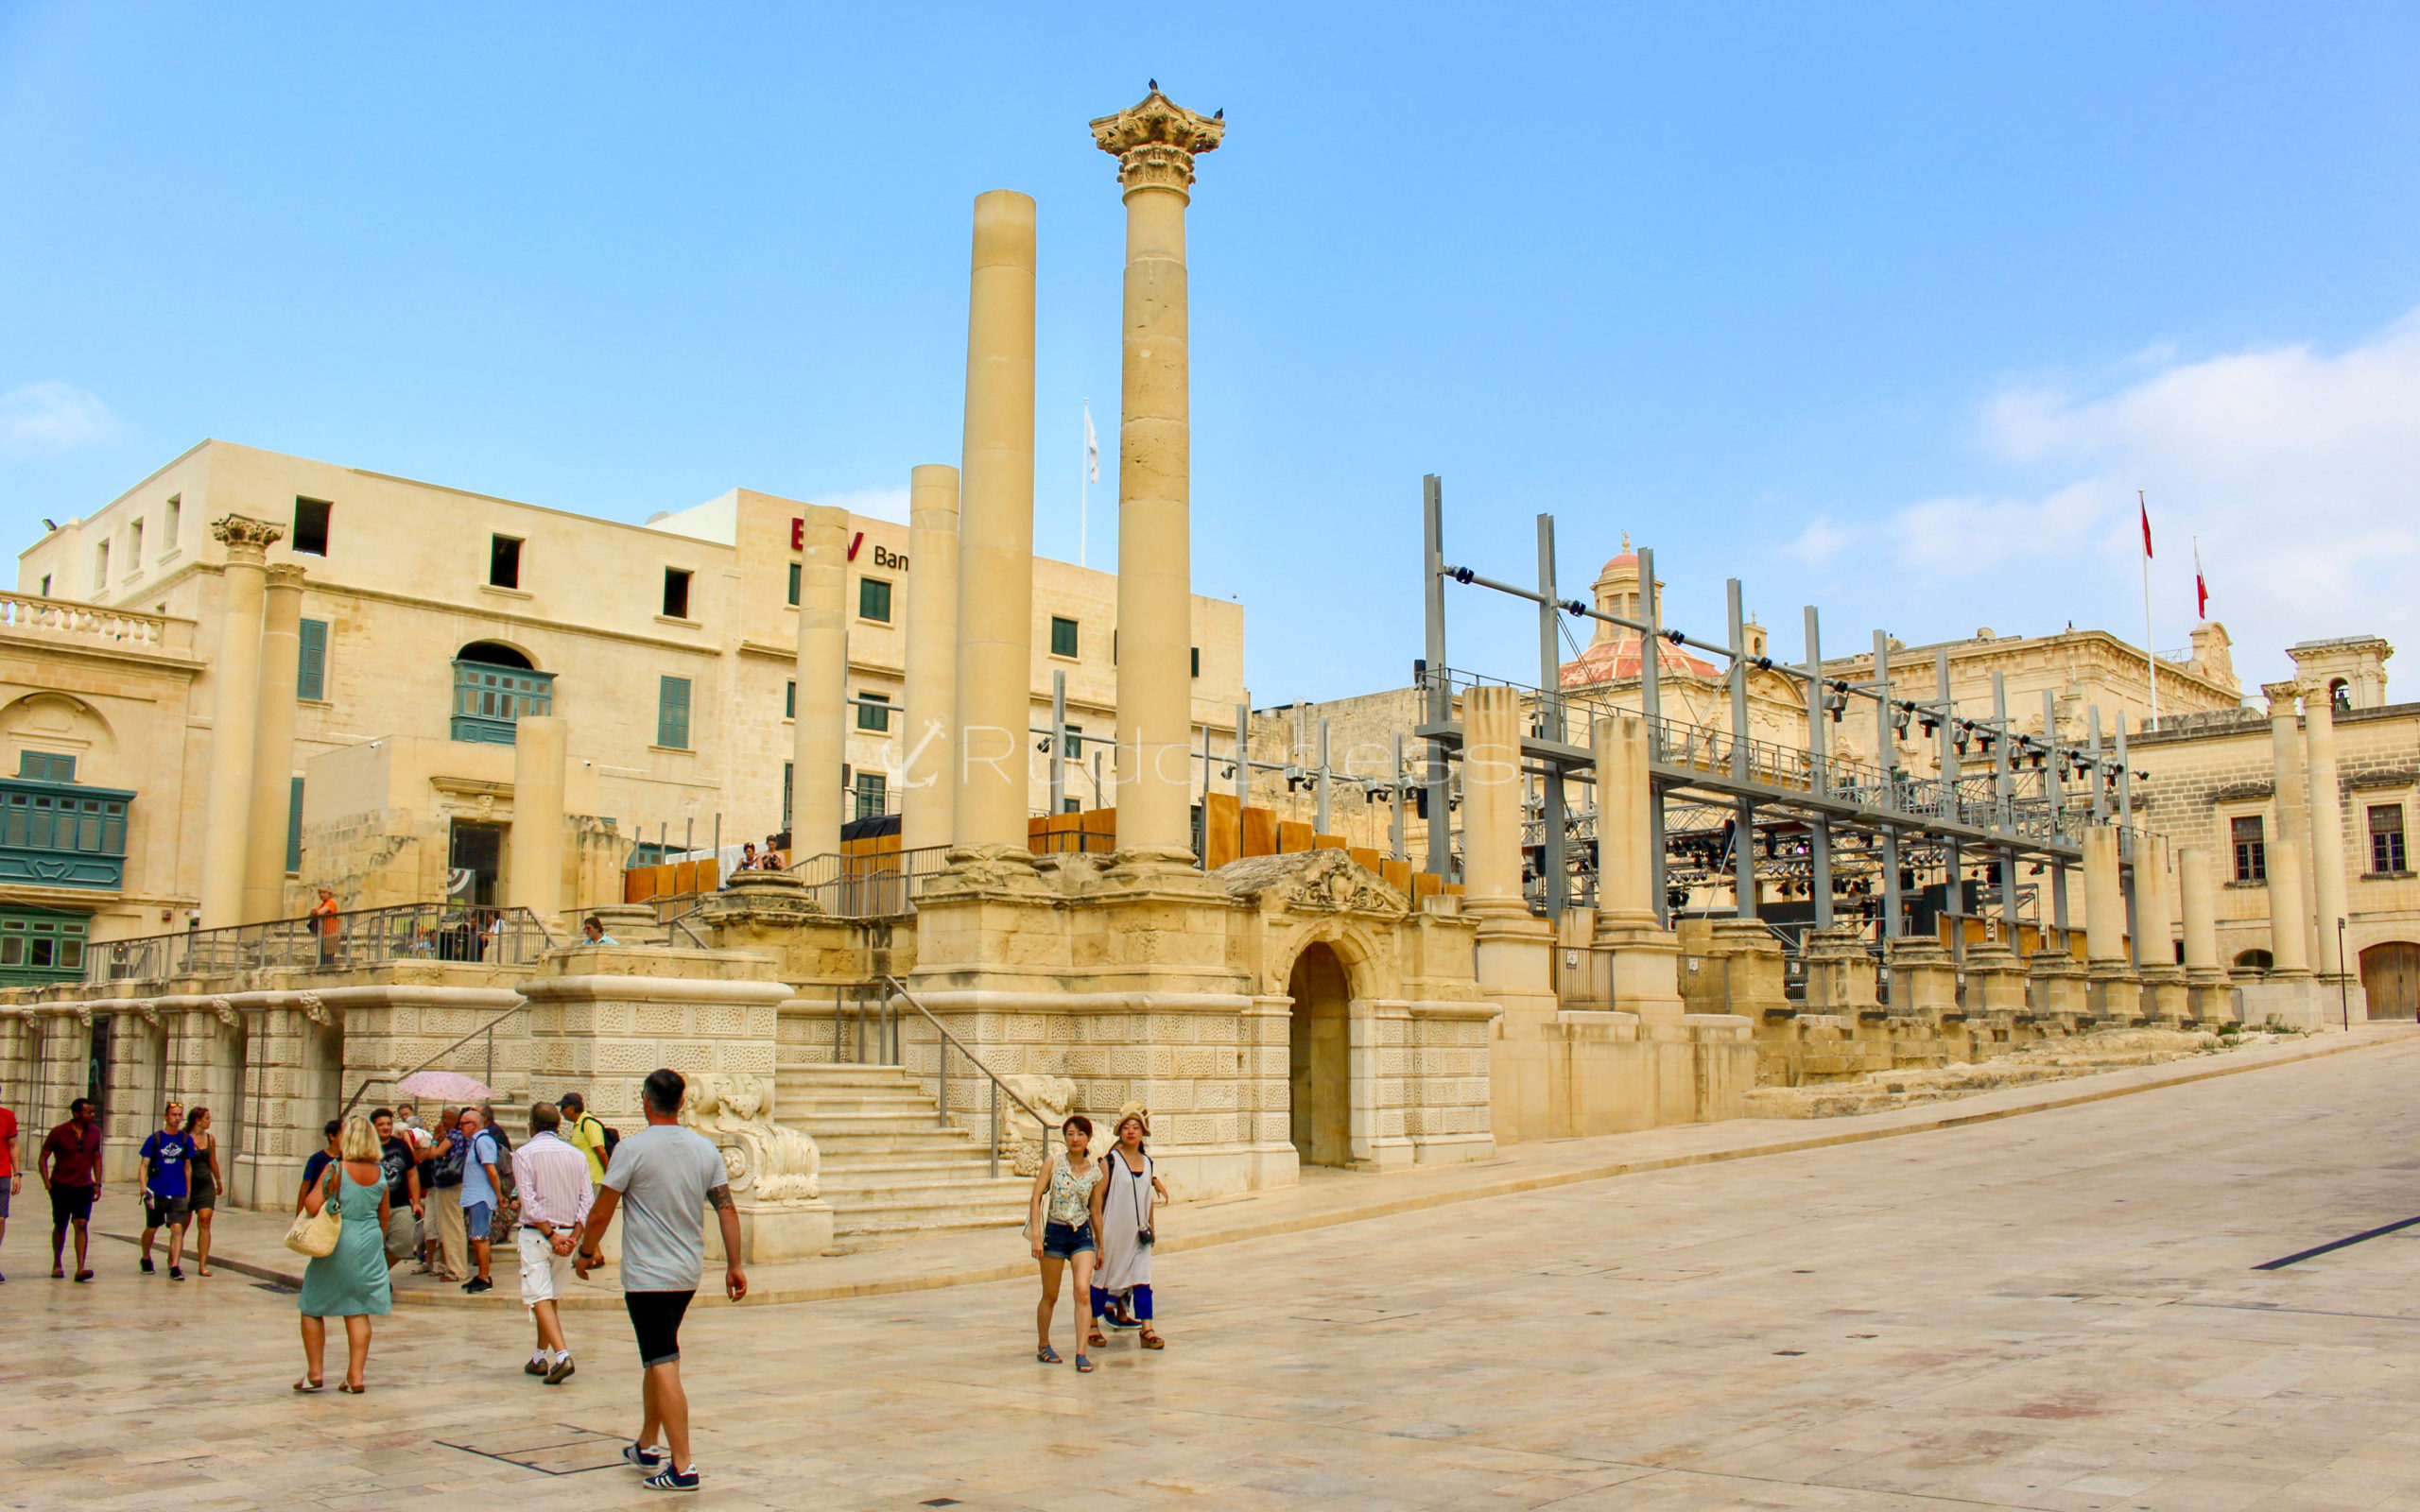 things to do in valletta - PJAZZA TEATRU RJAL